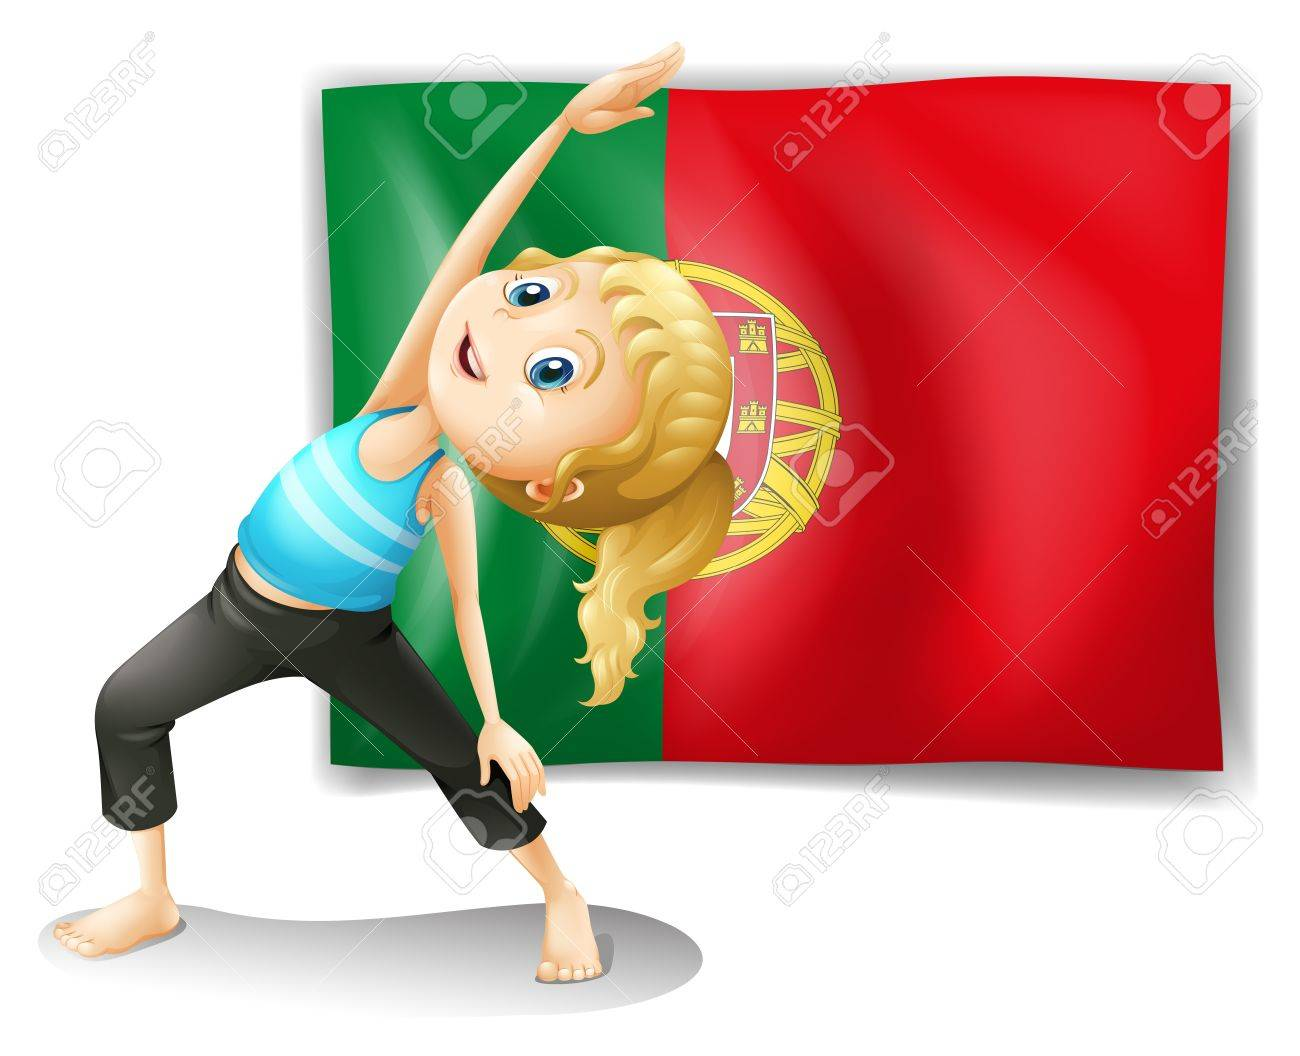 Illustration of a young woman in front of the Portugal flag on a white background Stock Vector - 18610452